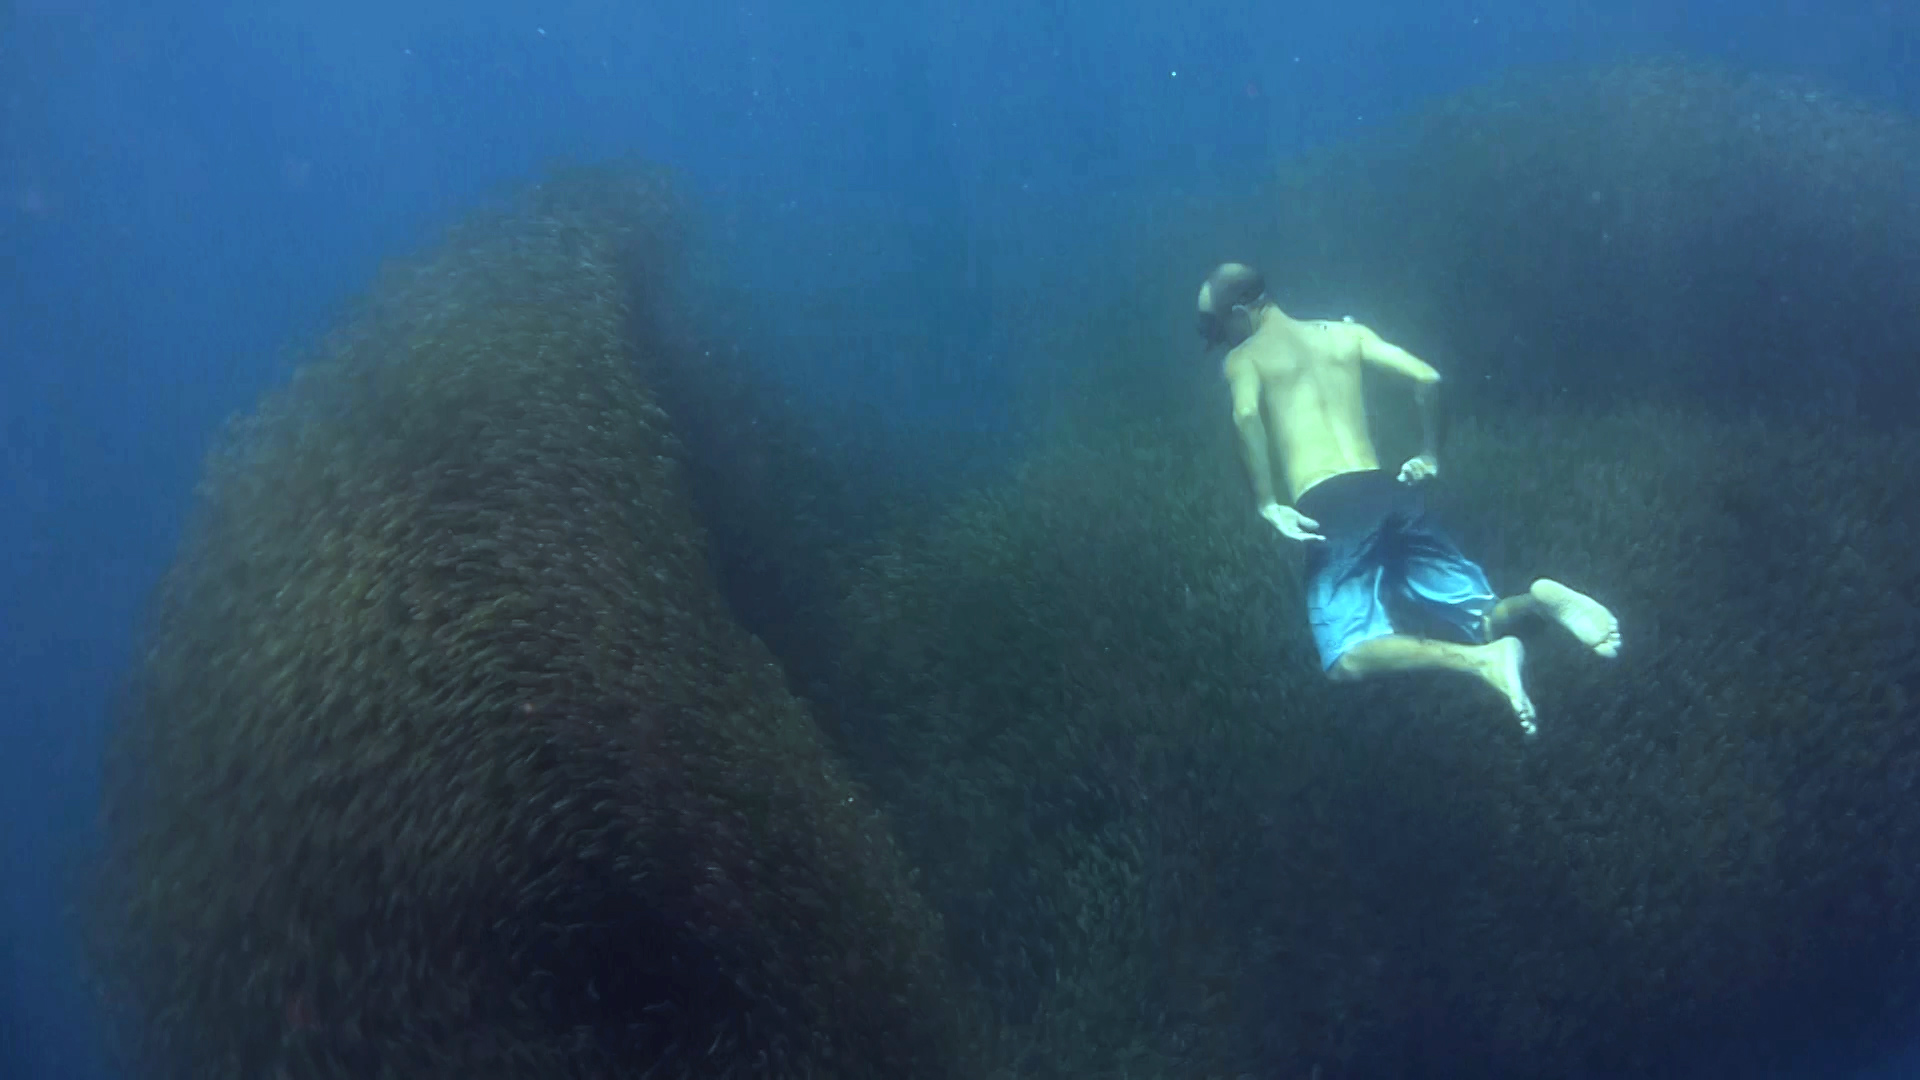 Underwater video : Swimming in a fish bait ball